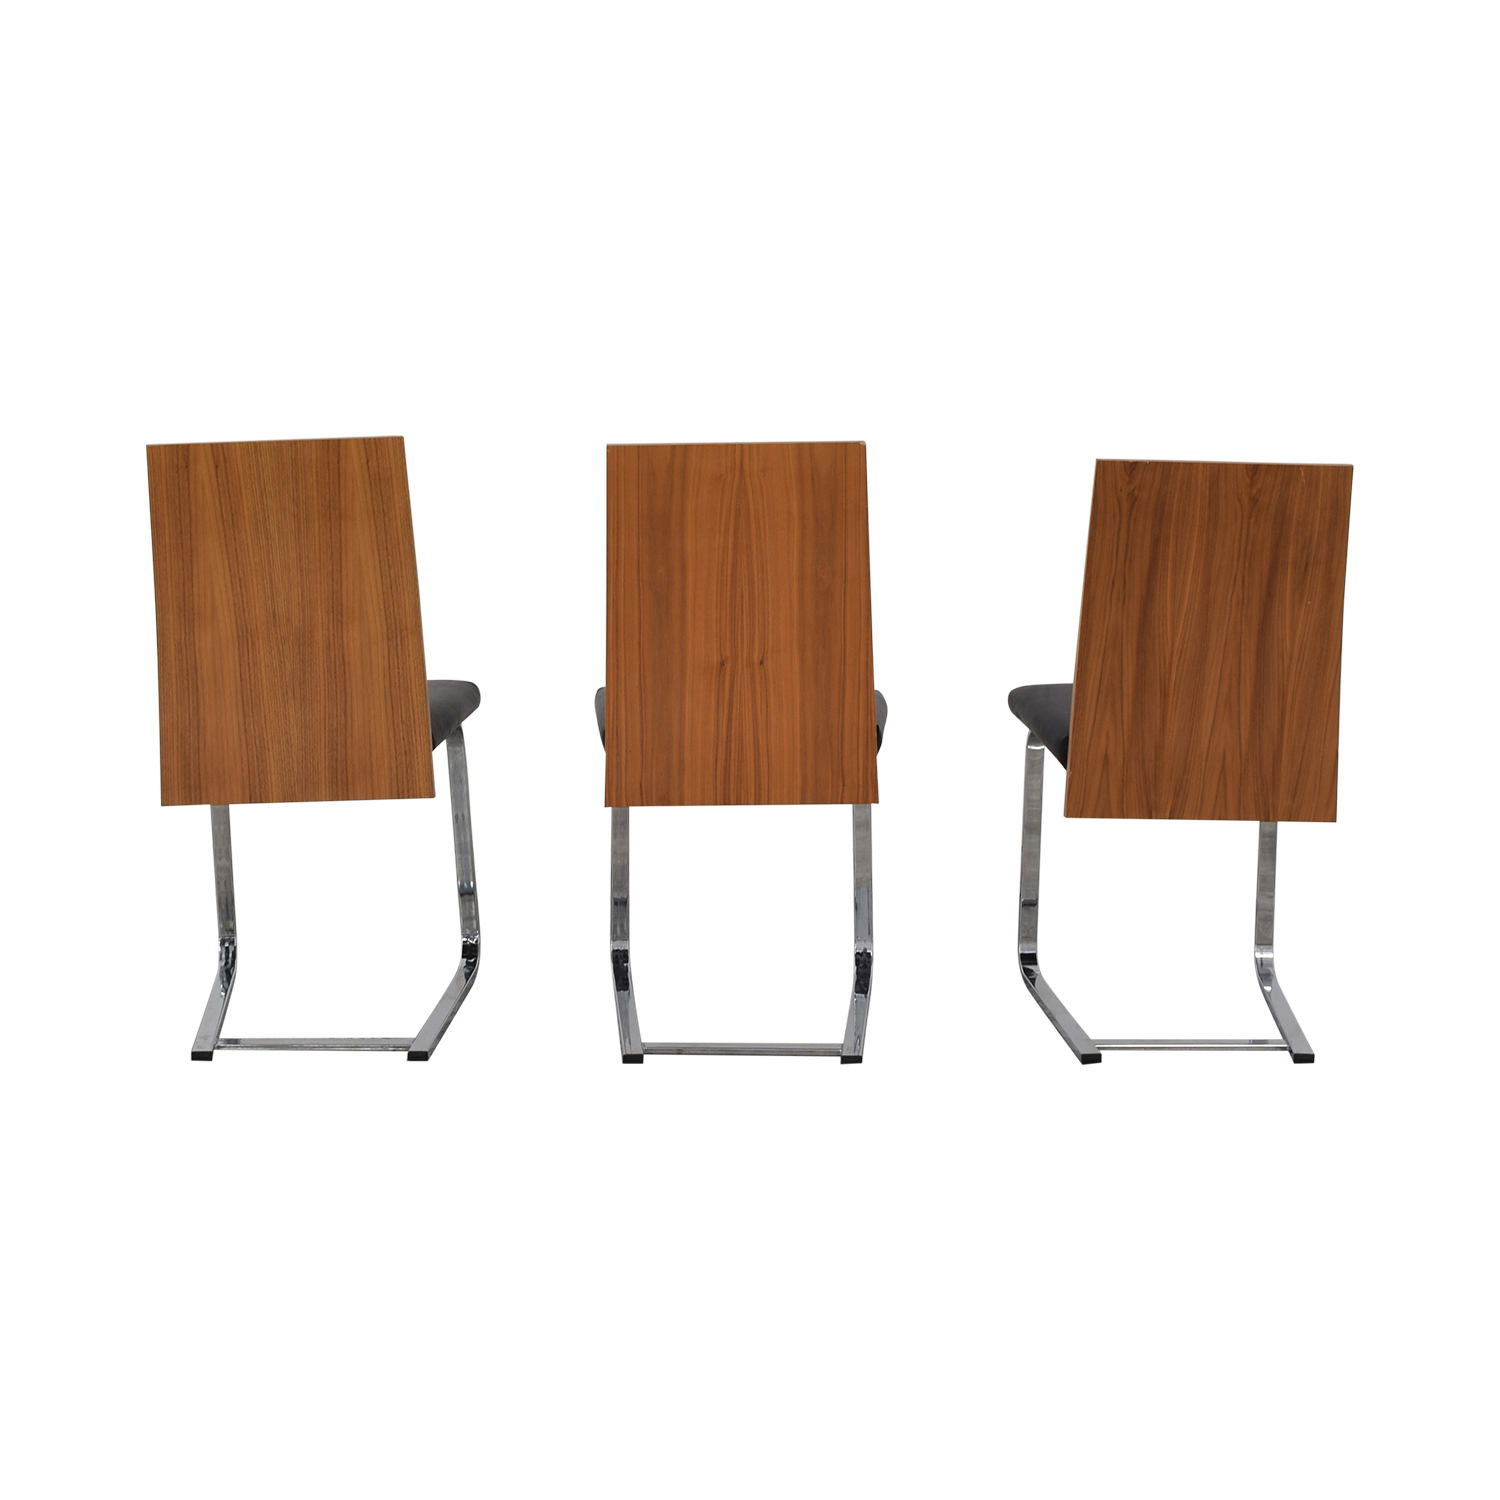 Domitalia Domitalia Jeff-sl Chrome Black Leather and Wood Dining Chairs discount